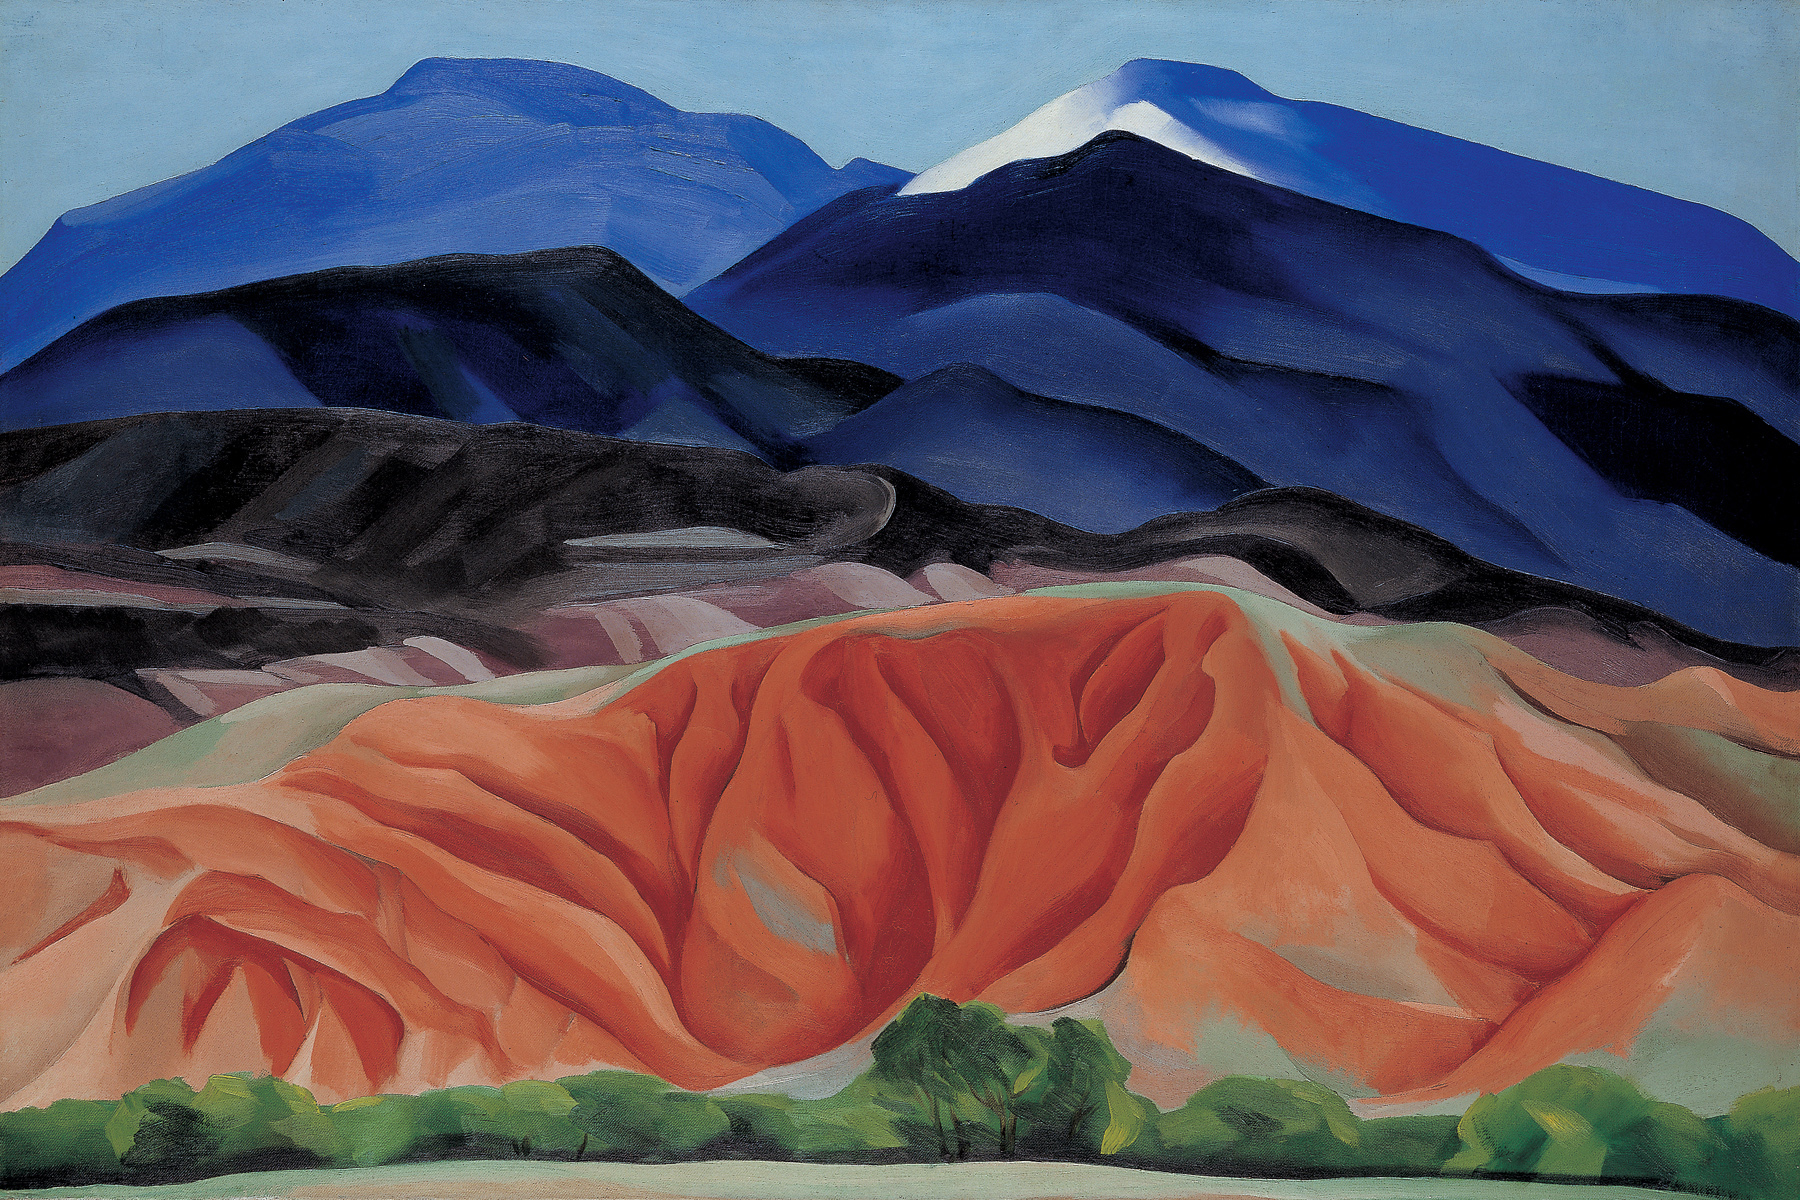 Georgia O'Keeffe, Black Mesa Landscape, New Mexico/Out Back of Marie's II, 1930; oil on canvas; 24 1/4 x 36 1/4 in.; Collection of the Georgia O'Keeffe Museum, gift of The Burnett Foundation; © 2009 Georgia O'Keeffe Museum/Artists Rights Society (ARS), New York